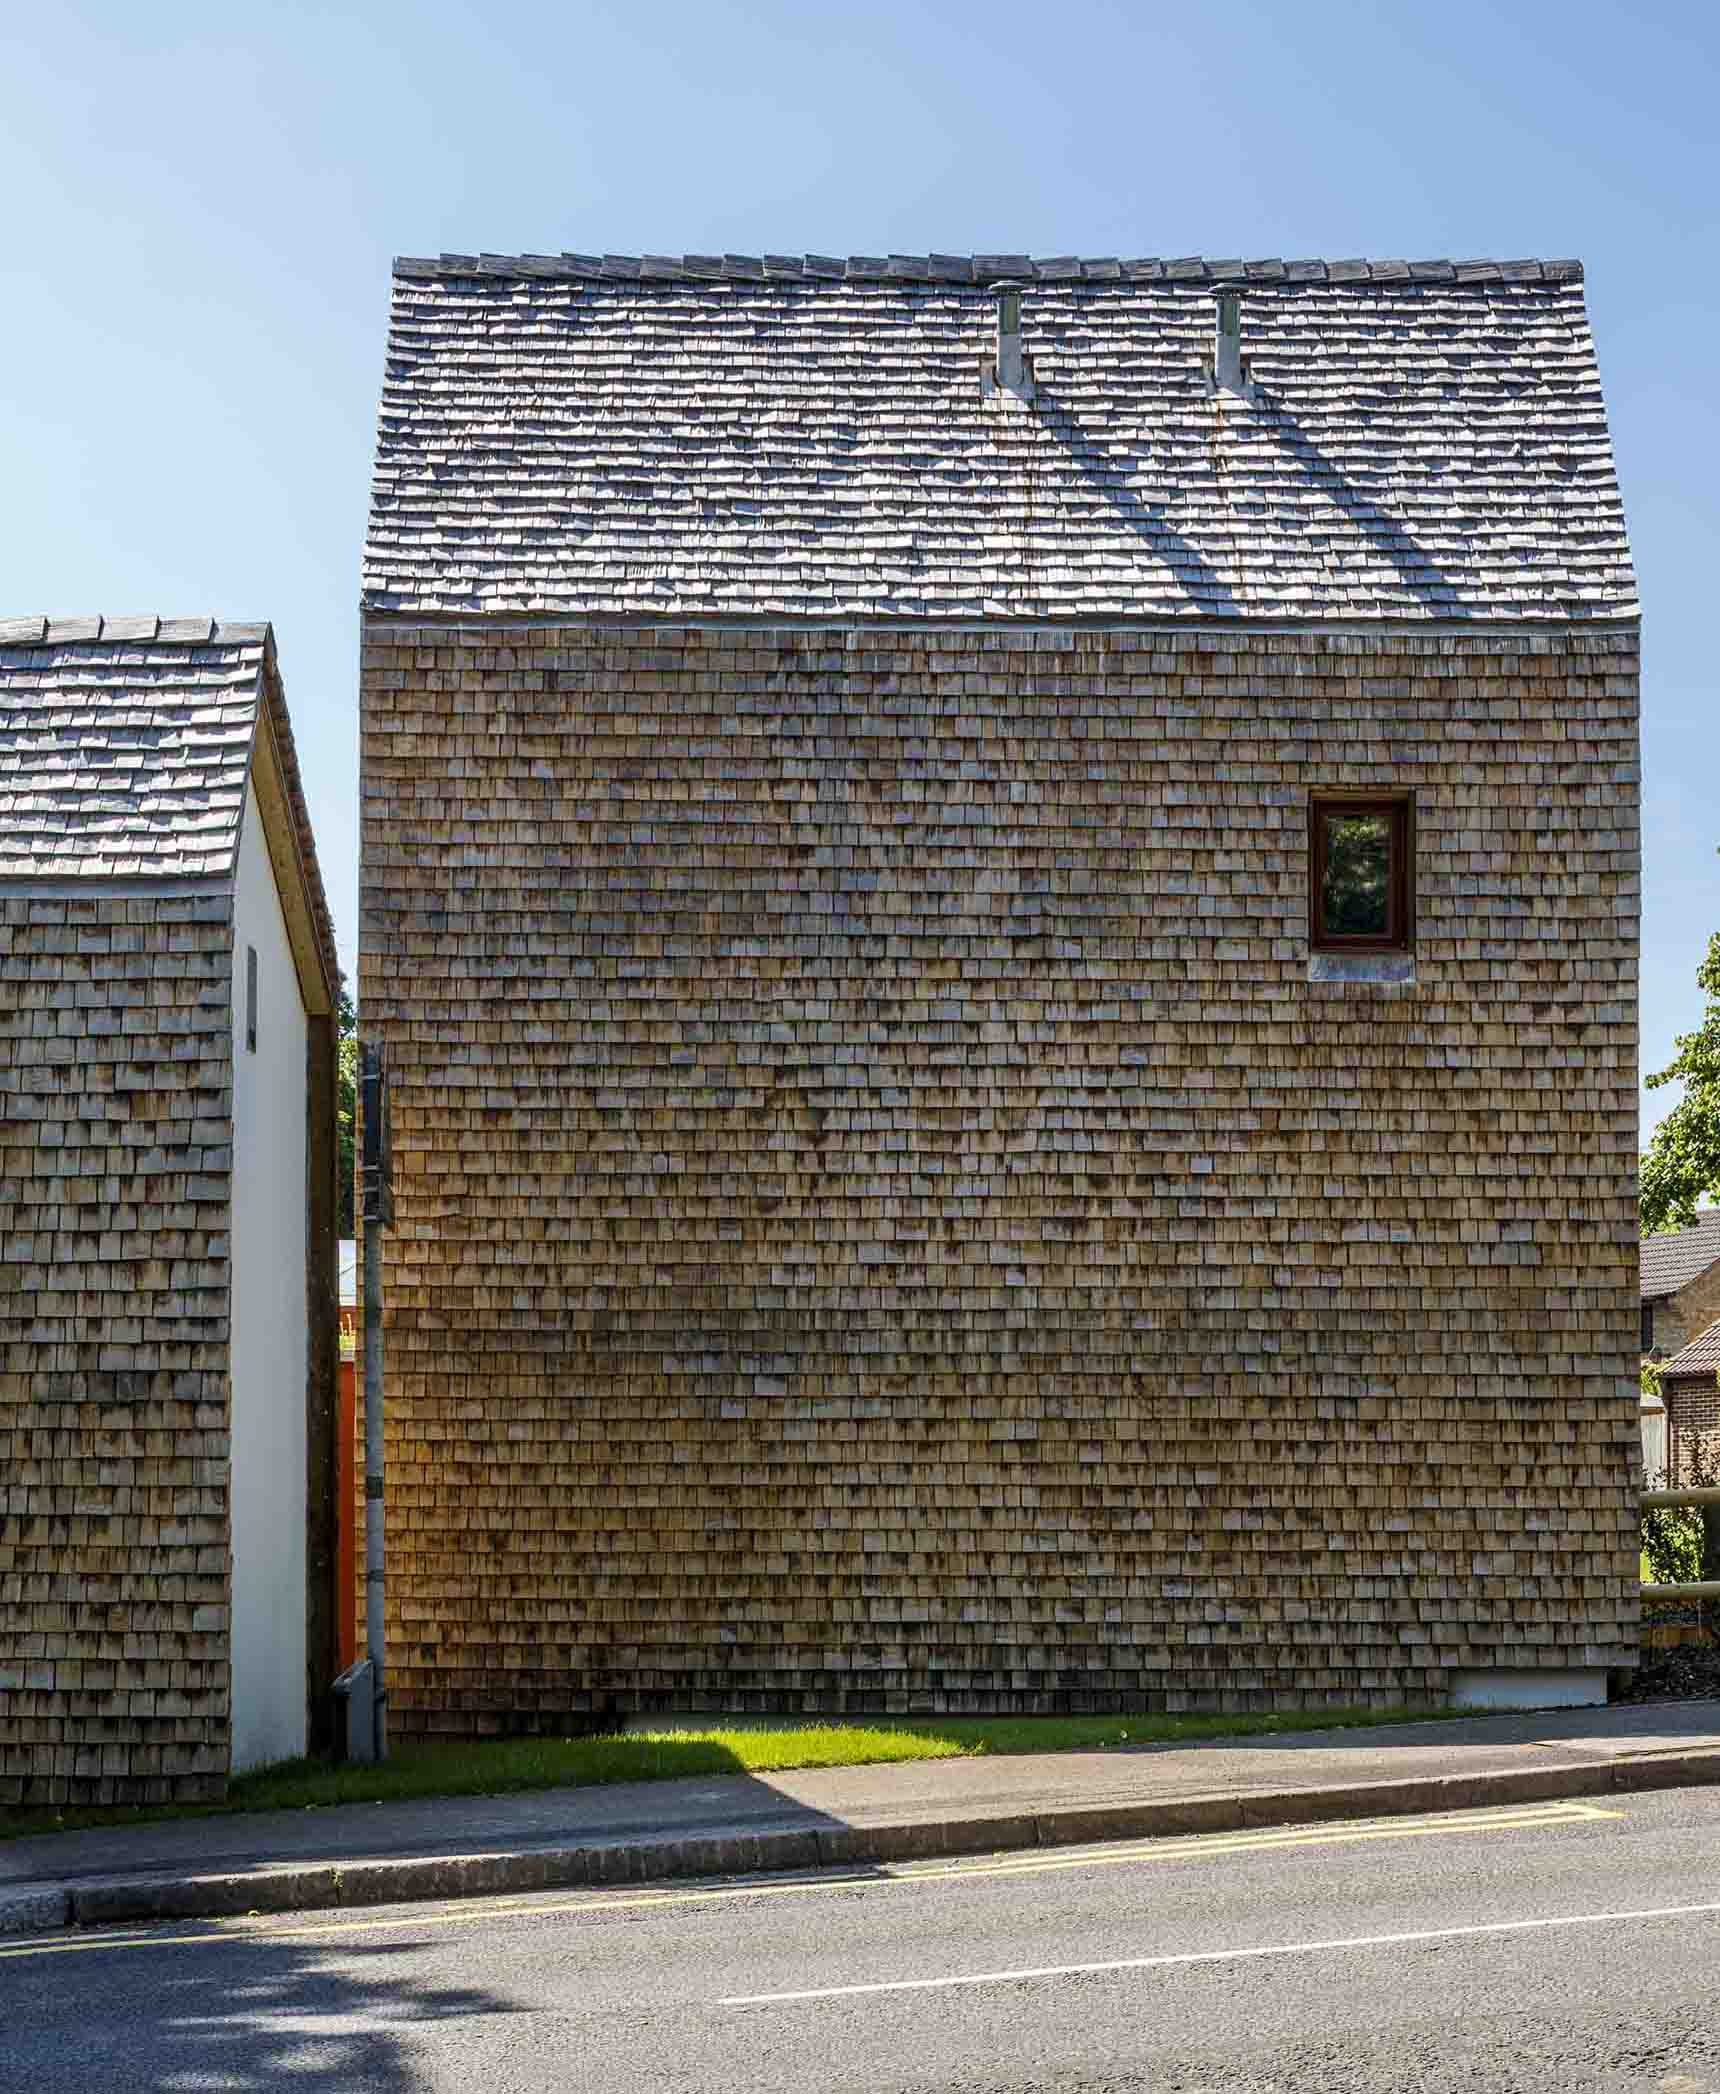 Exhibition Mews Ash Sakula three houses locally source chestnut roof local materials